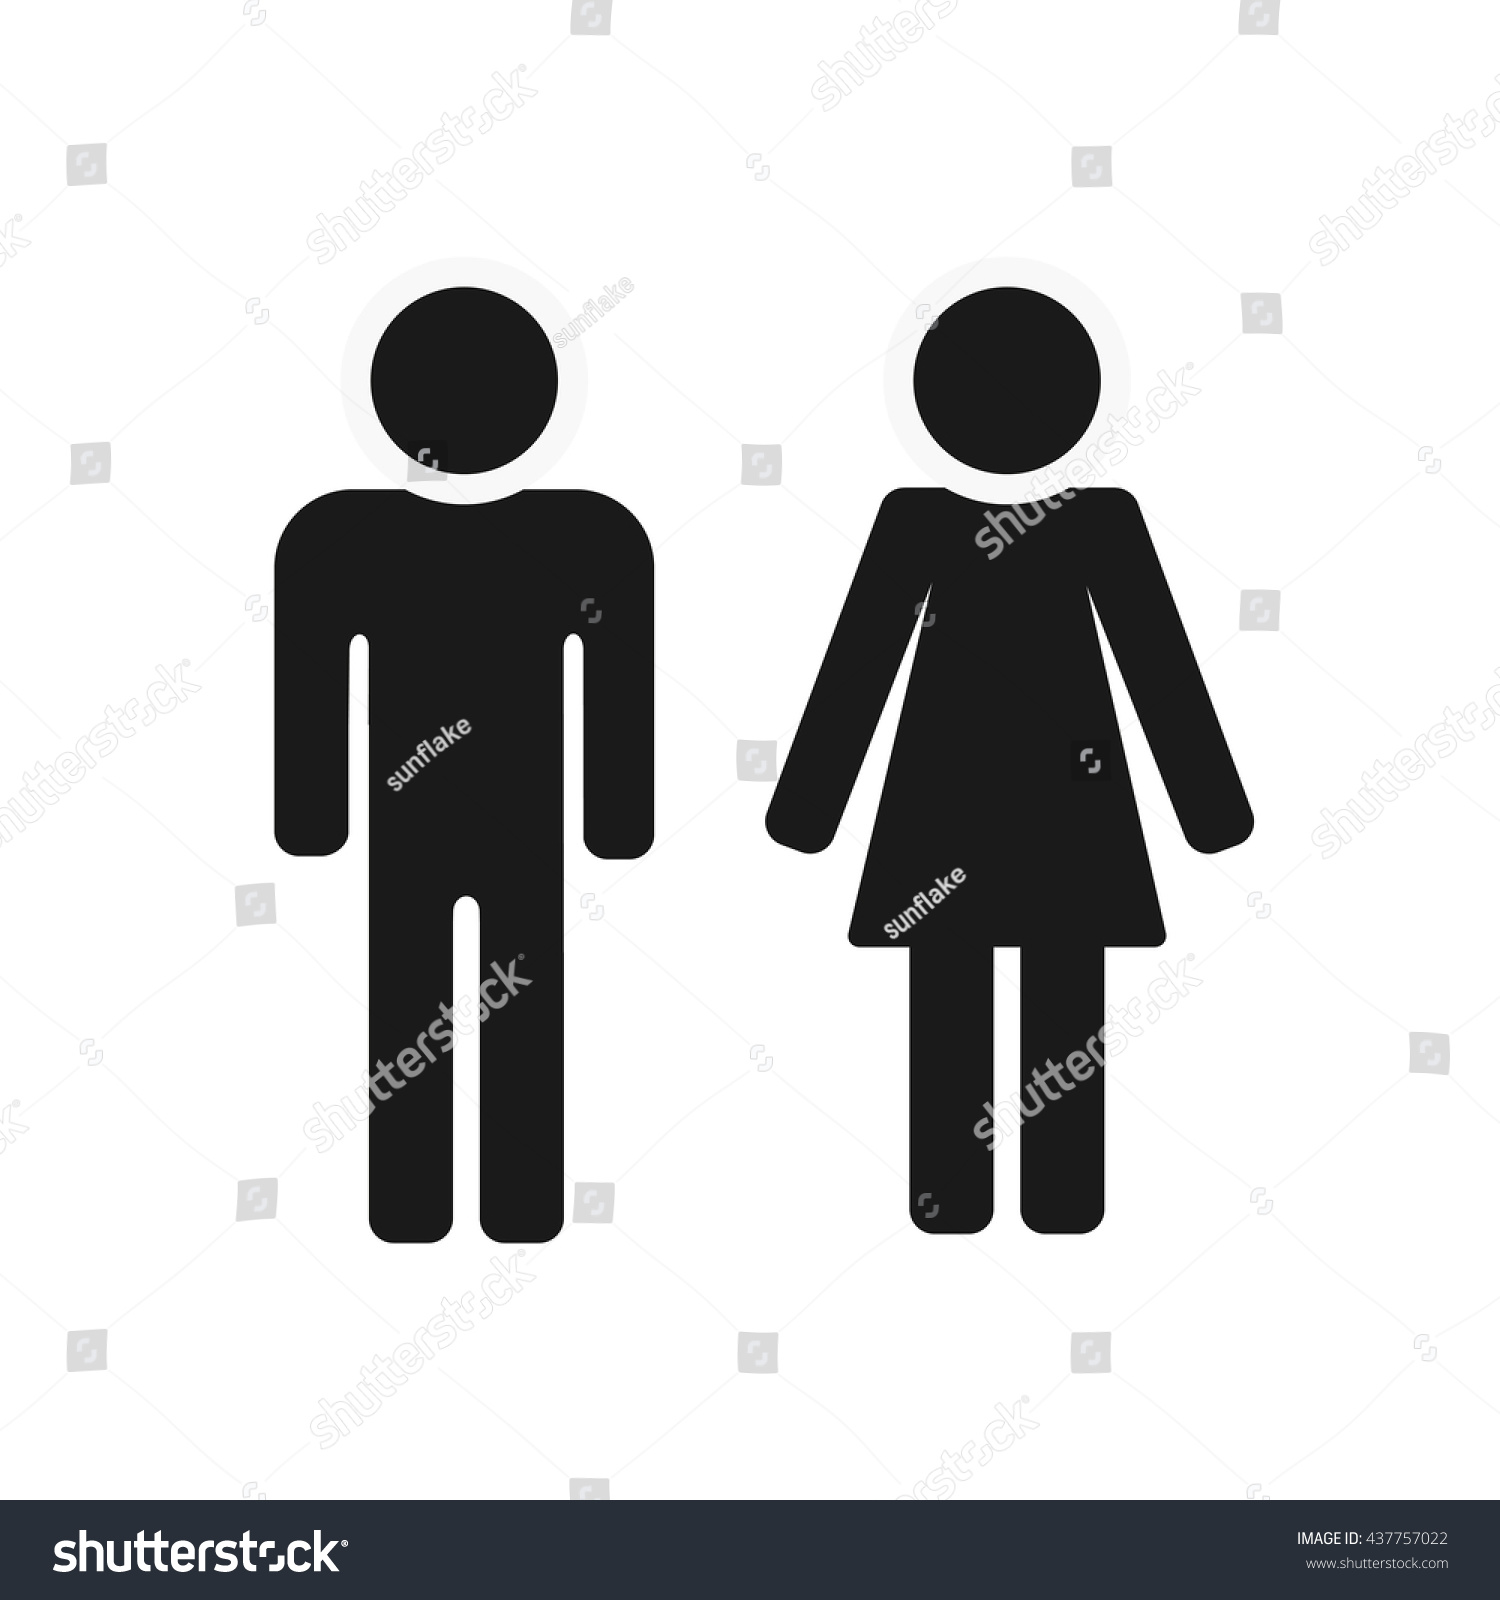 Vector man and woman icons  toilet sign  restroom icon. Vector Man Woman Icons Toilet Sign Stock Vector 437757022